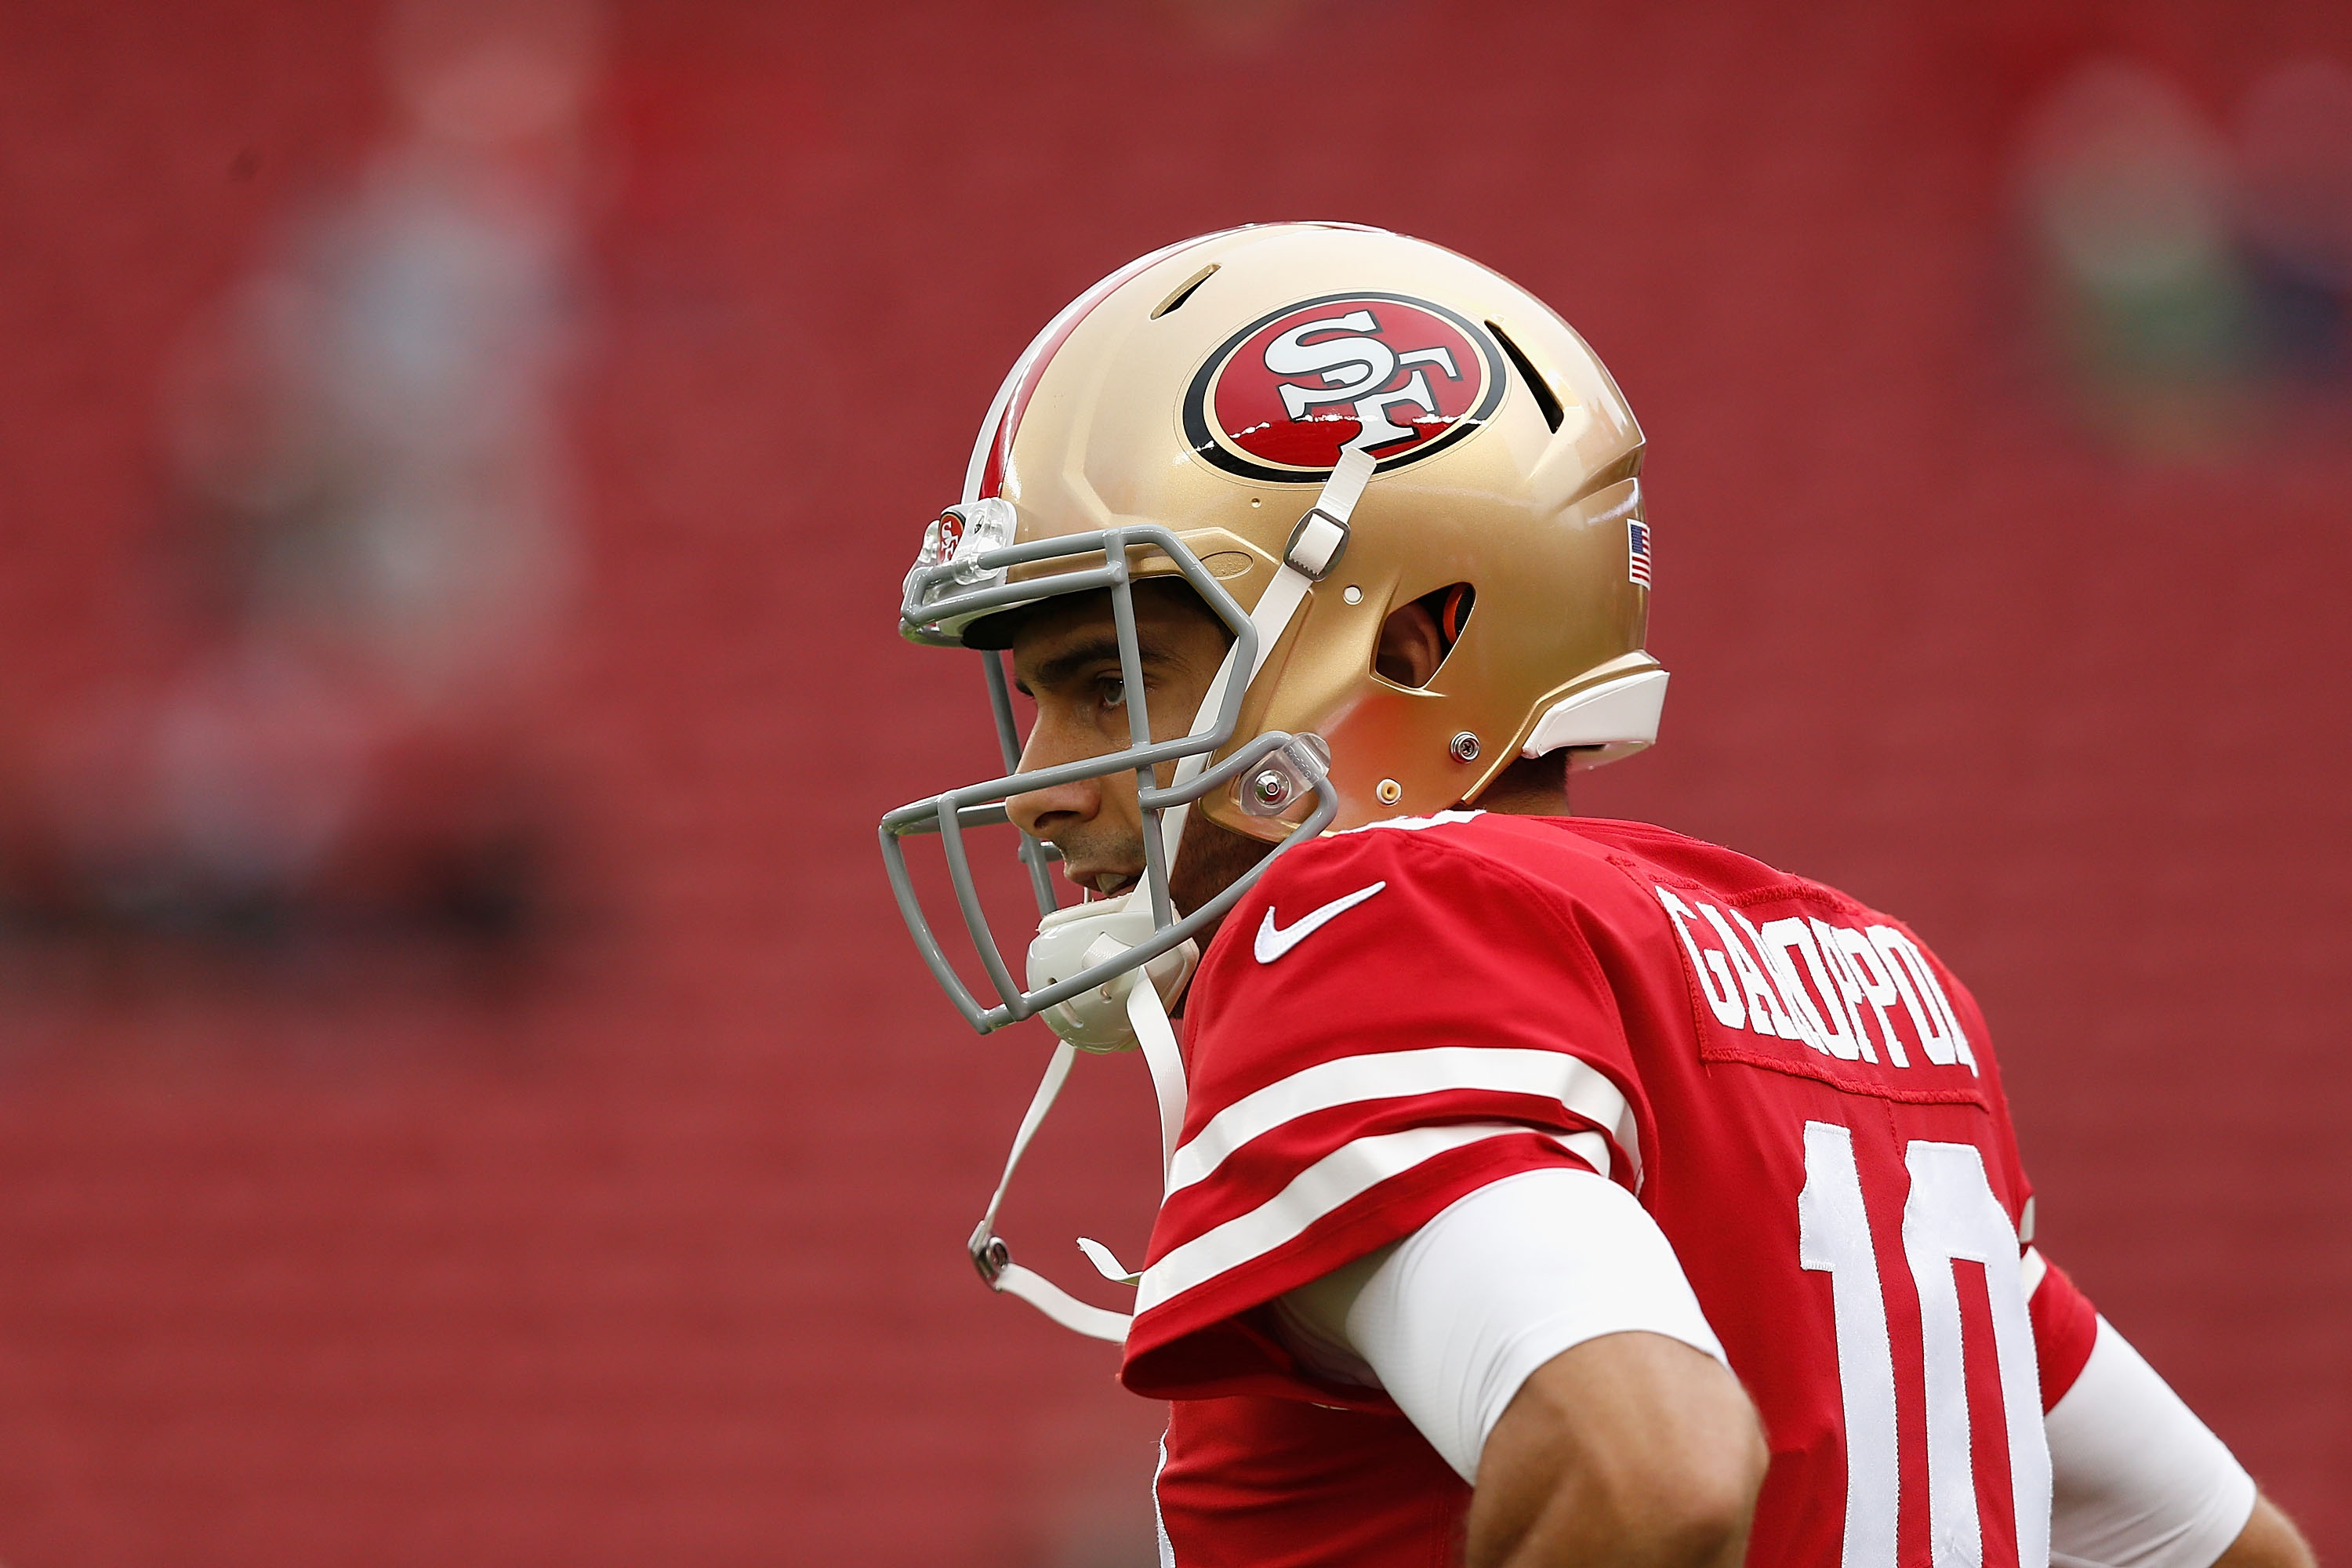 49ers announce Jimmy Garoppolo will start Sunday vs. Bears